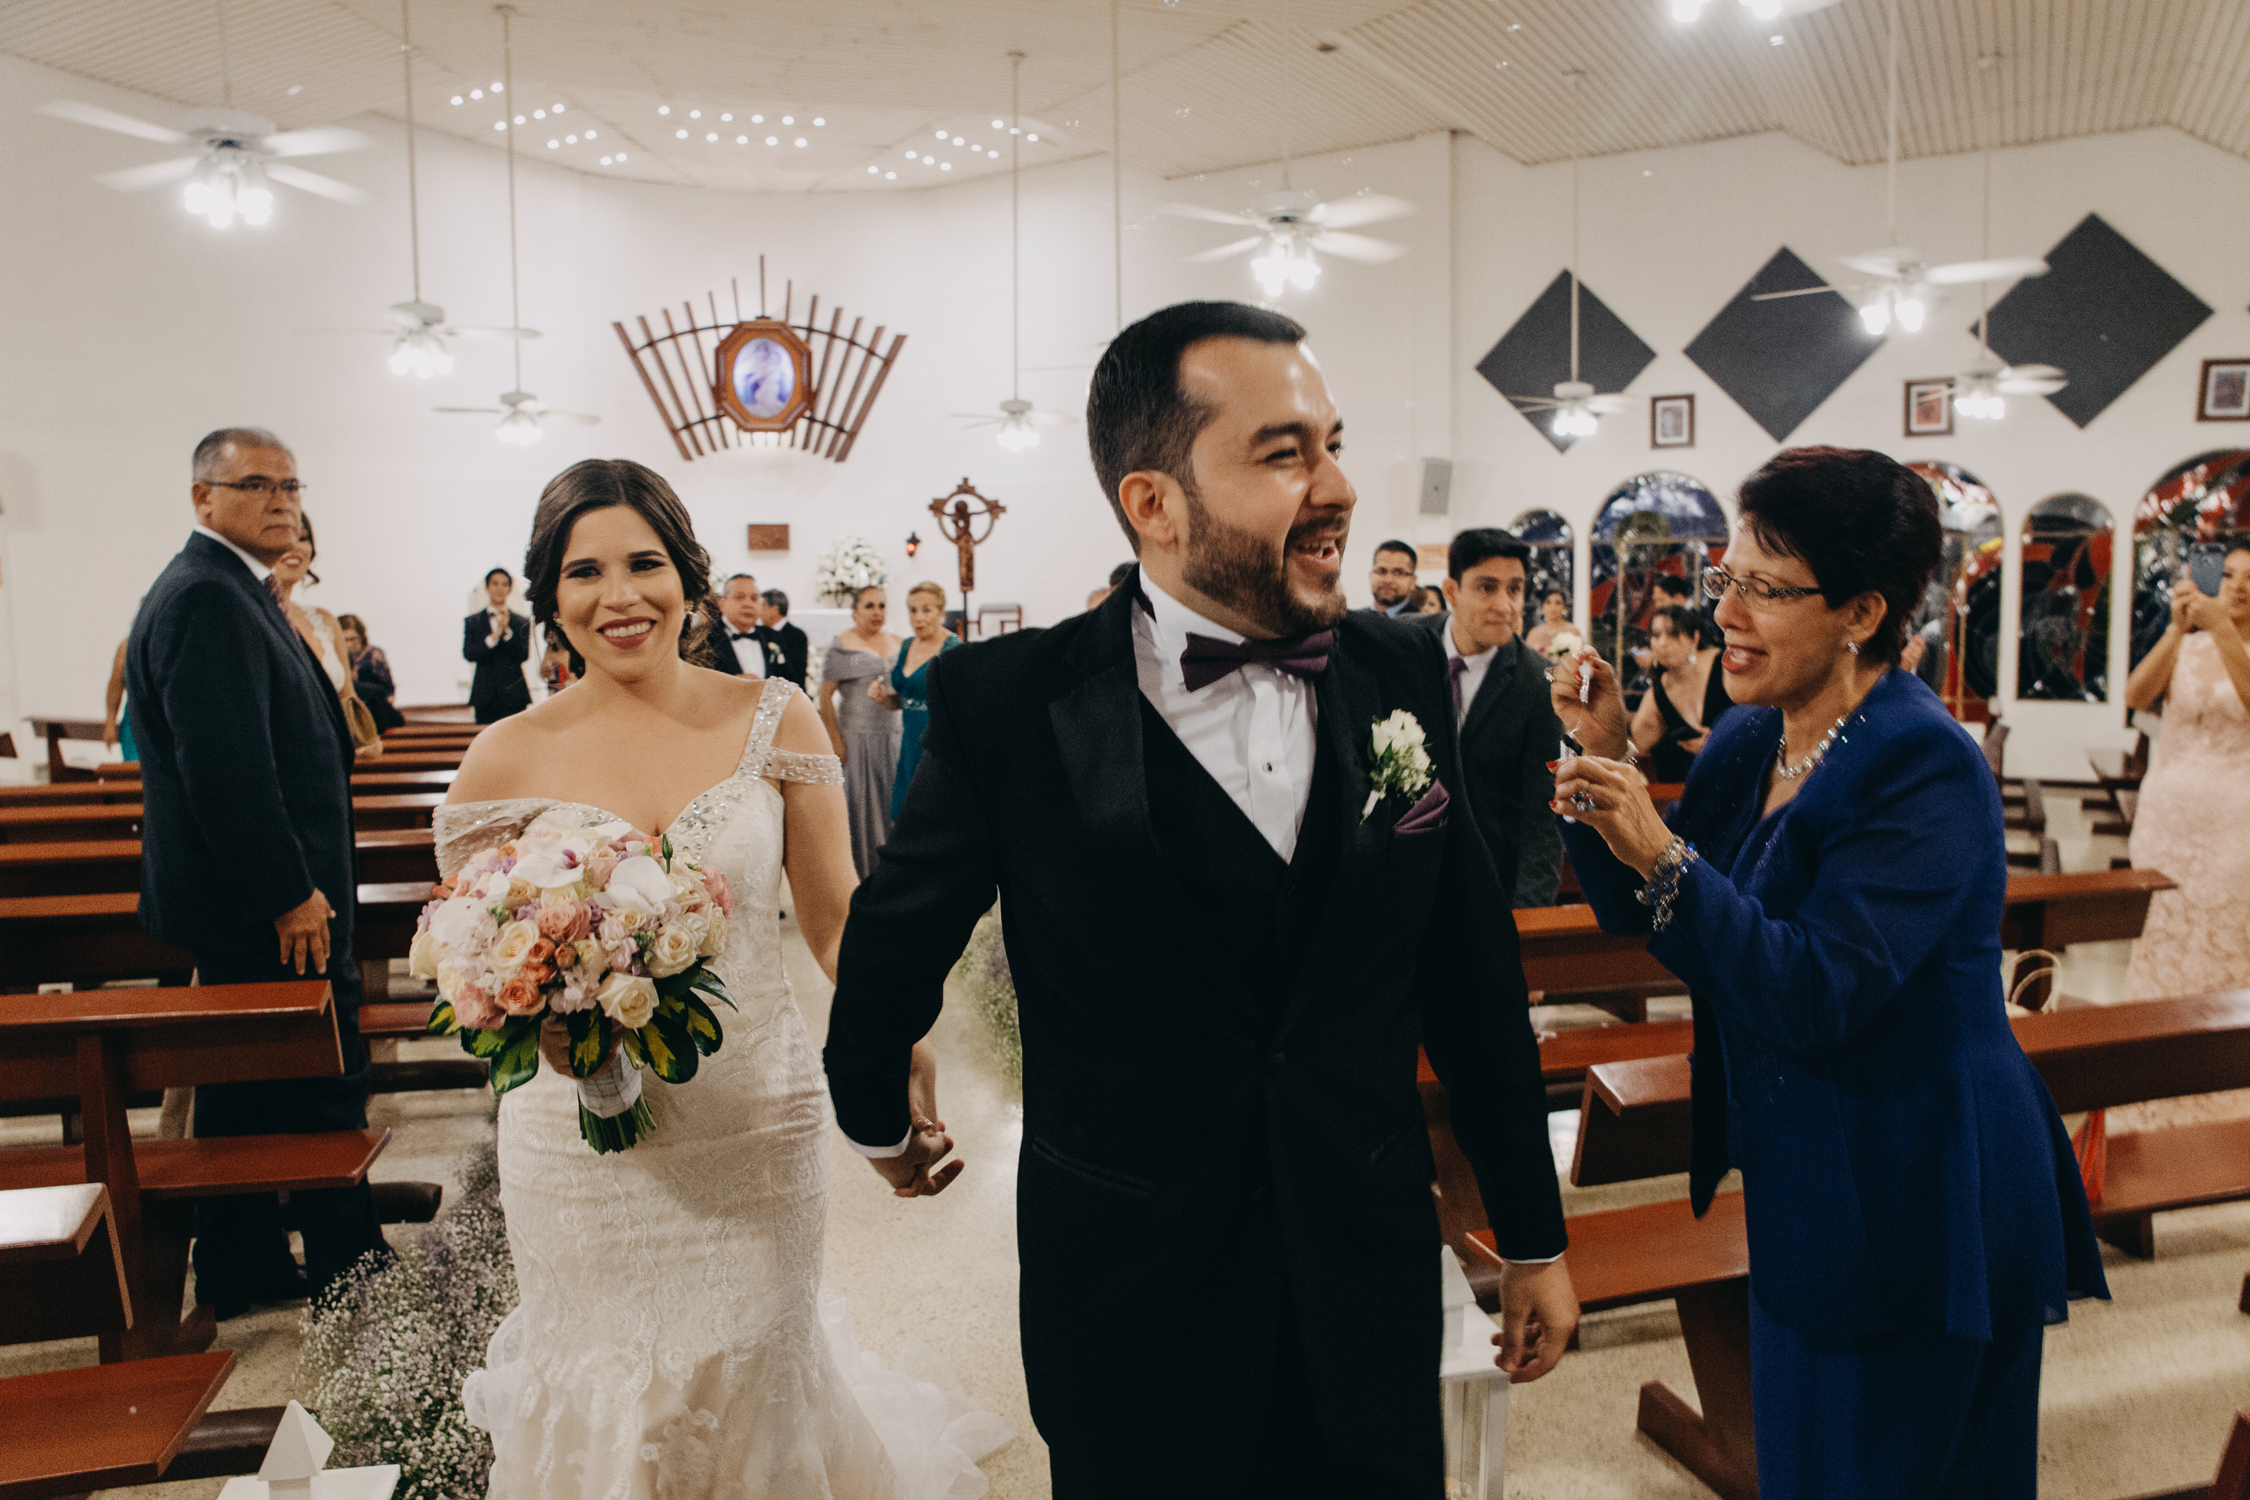 Michelle-Agurto-Fotografia-Bodas-Ecuador-Destination-Wedding-Photographer-Majito-Oscar-161.JPG